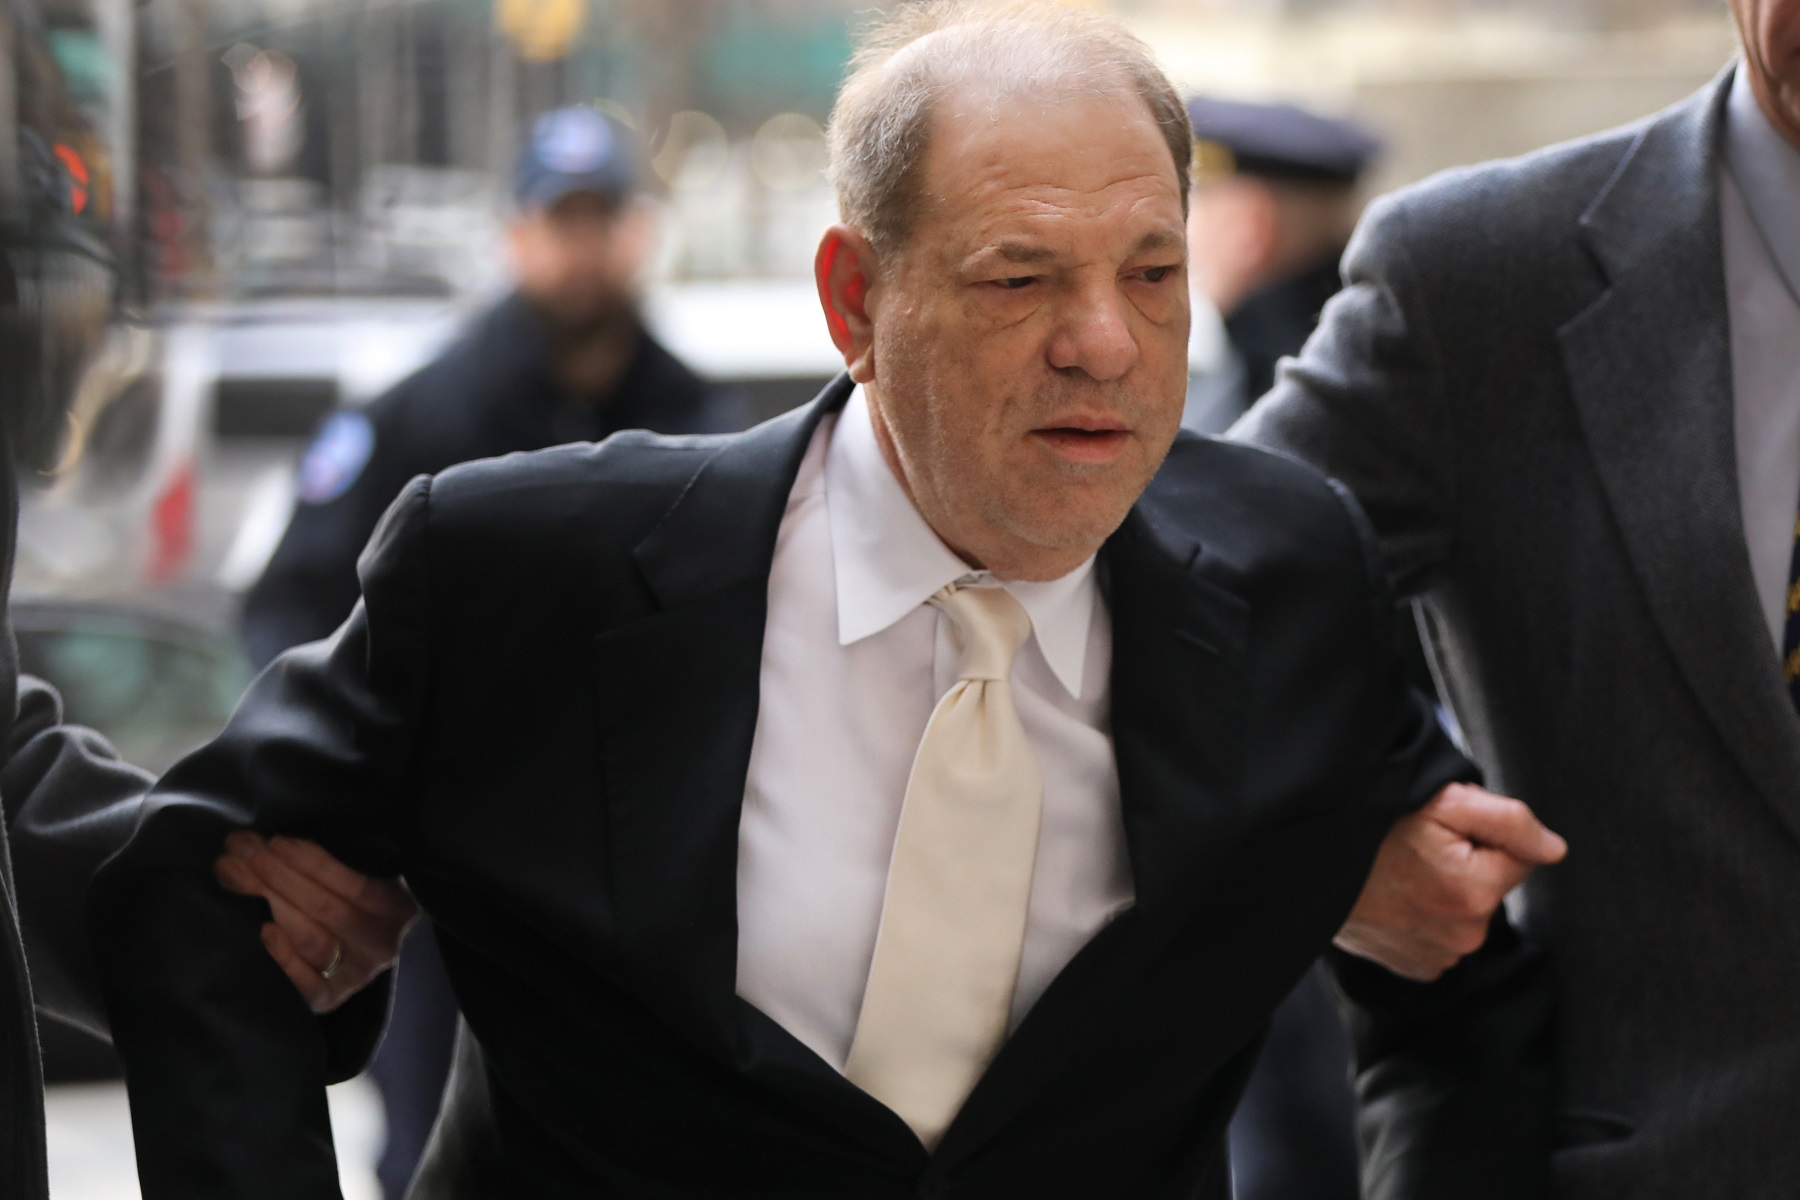 NEW YORK, NEW YORK - JANUARY 23: Harvey Weinstein arrives at a Manhattan court house for the second day of his trial on January 23, 2020 in New York City. Weinstein, a movie producer whose alleged sexual misconduct helped spark the #MeToo movement, pleaded not-guilty on five counts of rape and sexual assault against two unnamed women and faces a possible life sentence in prison. (Photo by Spencer Platt/Getty Images)